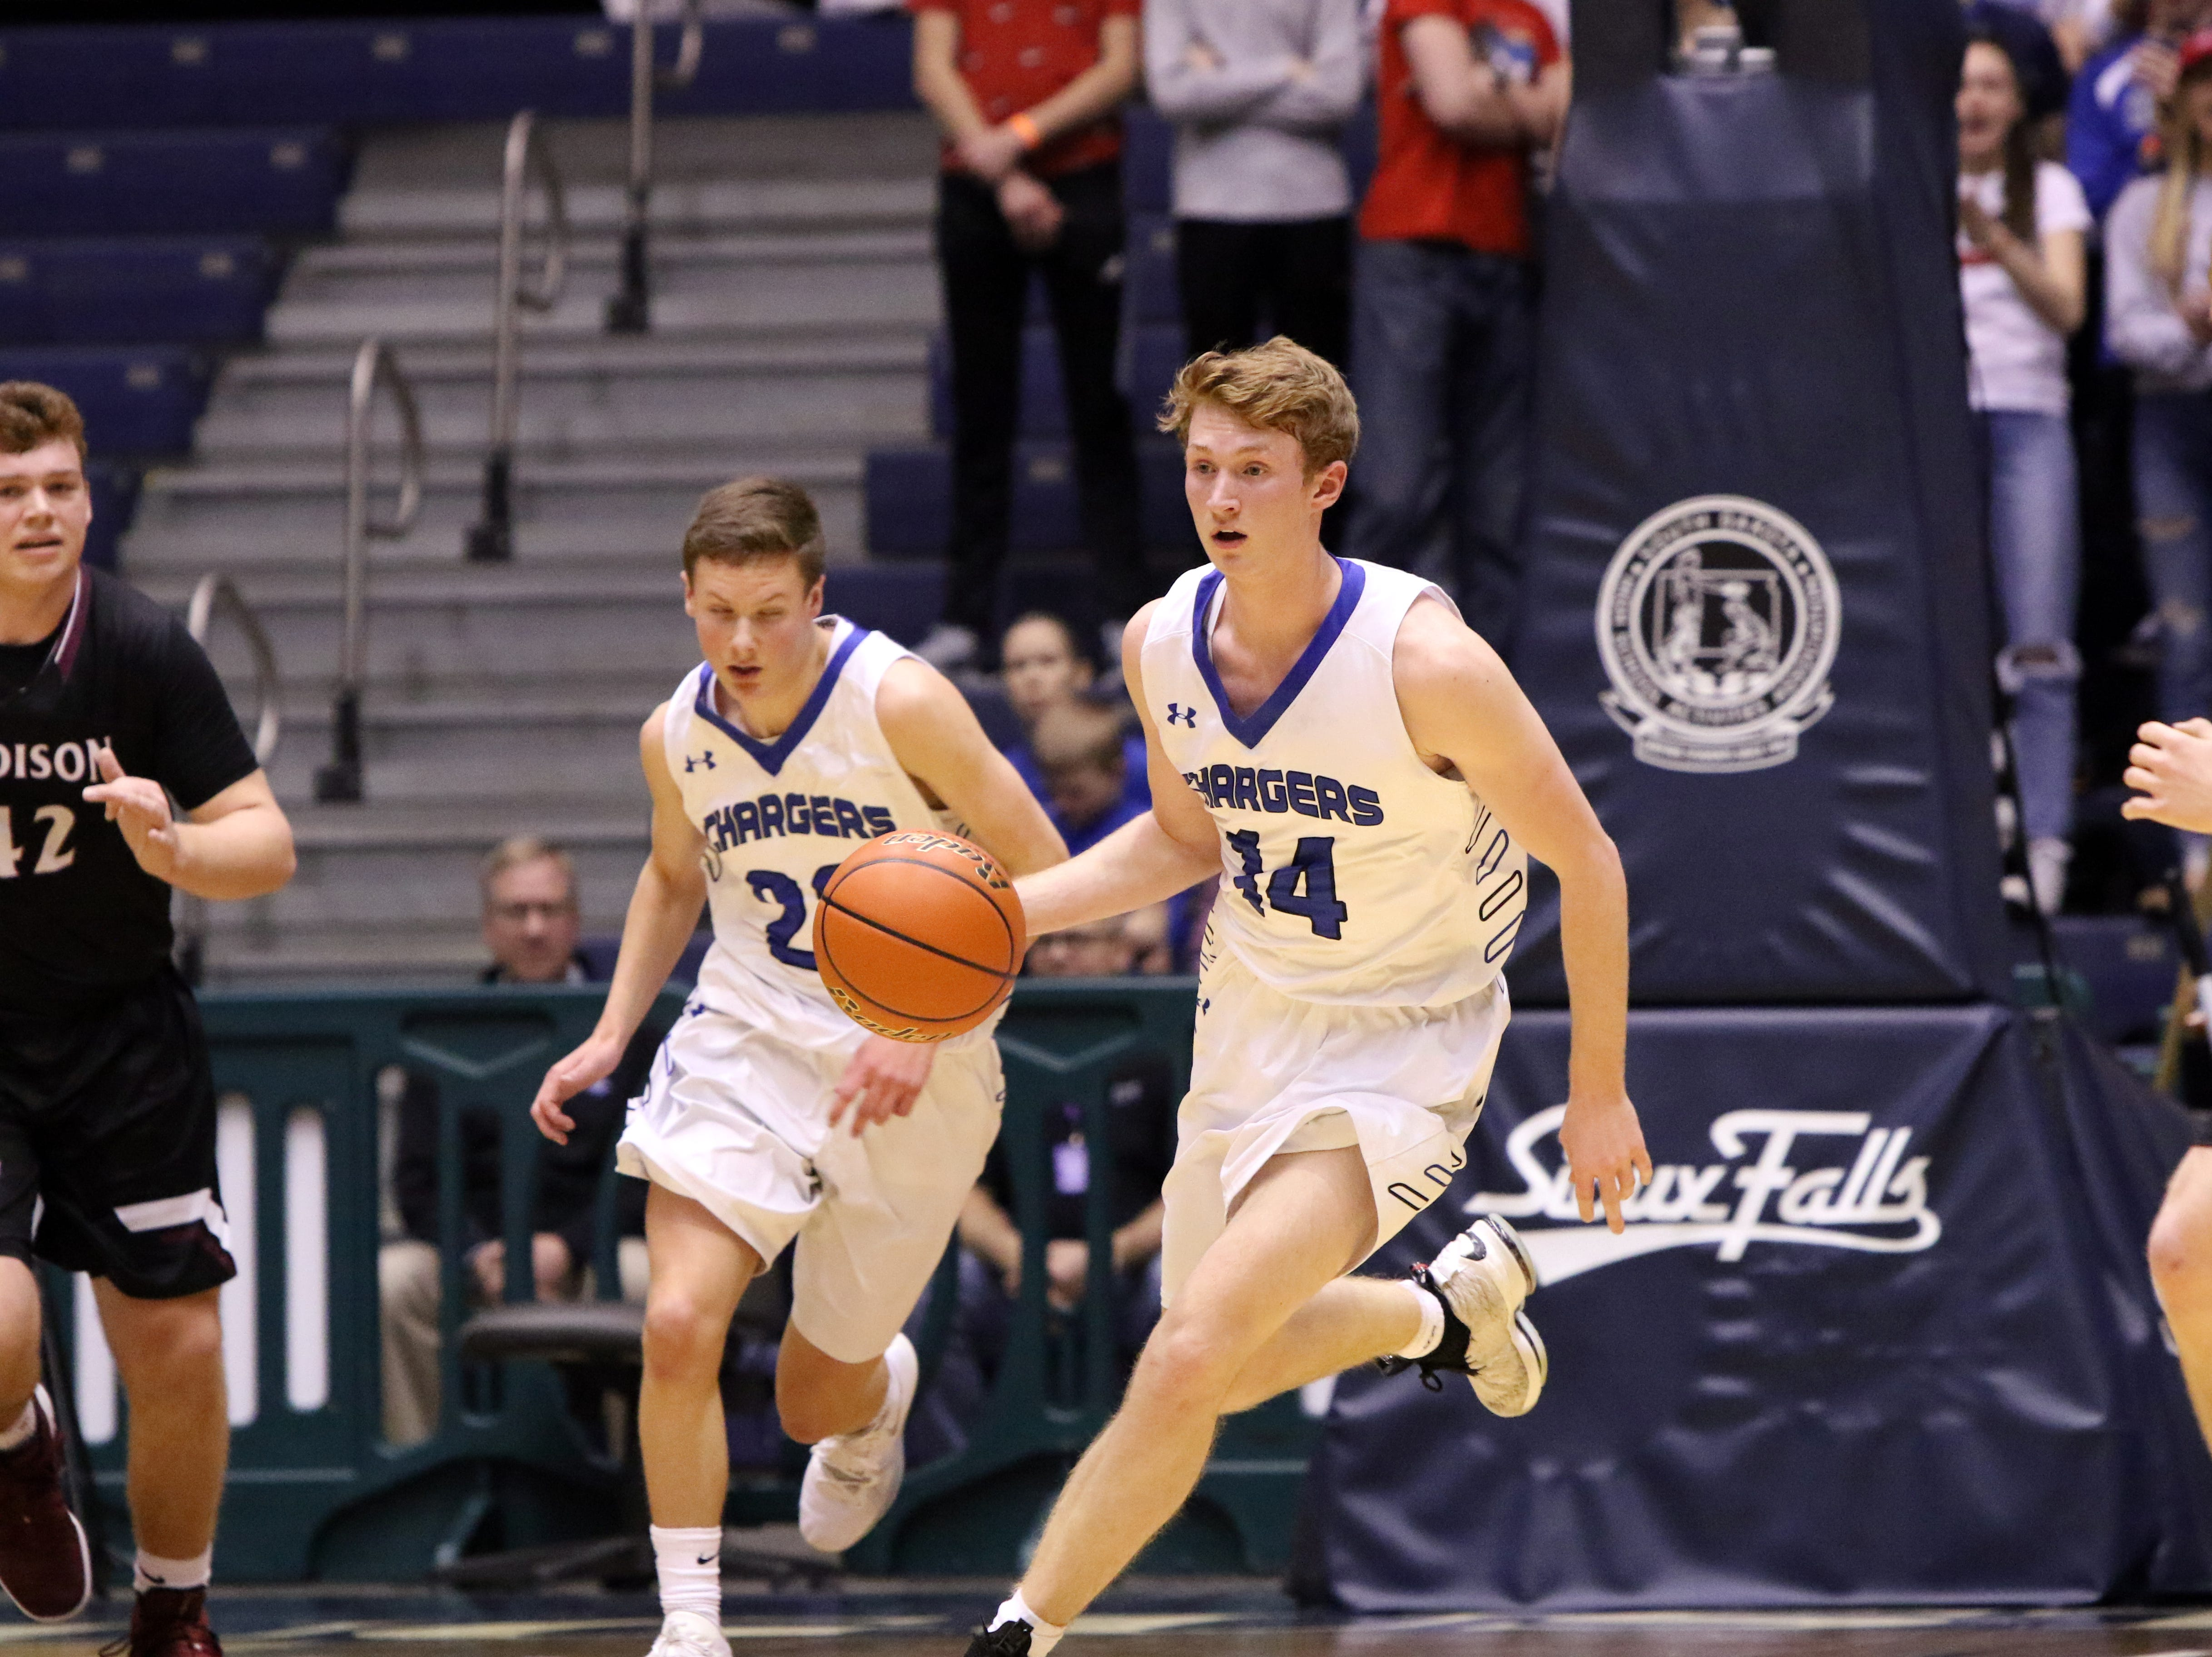 Gavin Schipper of Sioux Falls Christian leads a fast break against Madison during Thursday's game at the Arena in Sioux Falls.